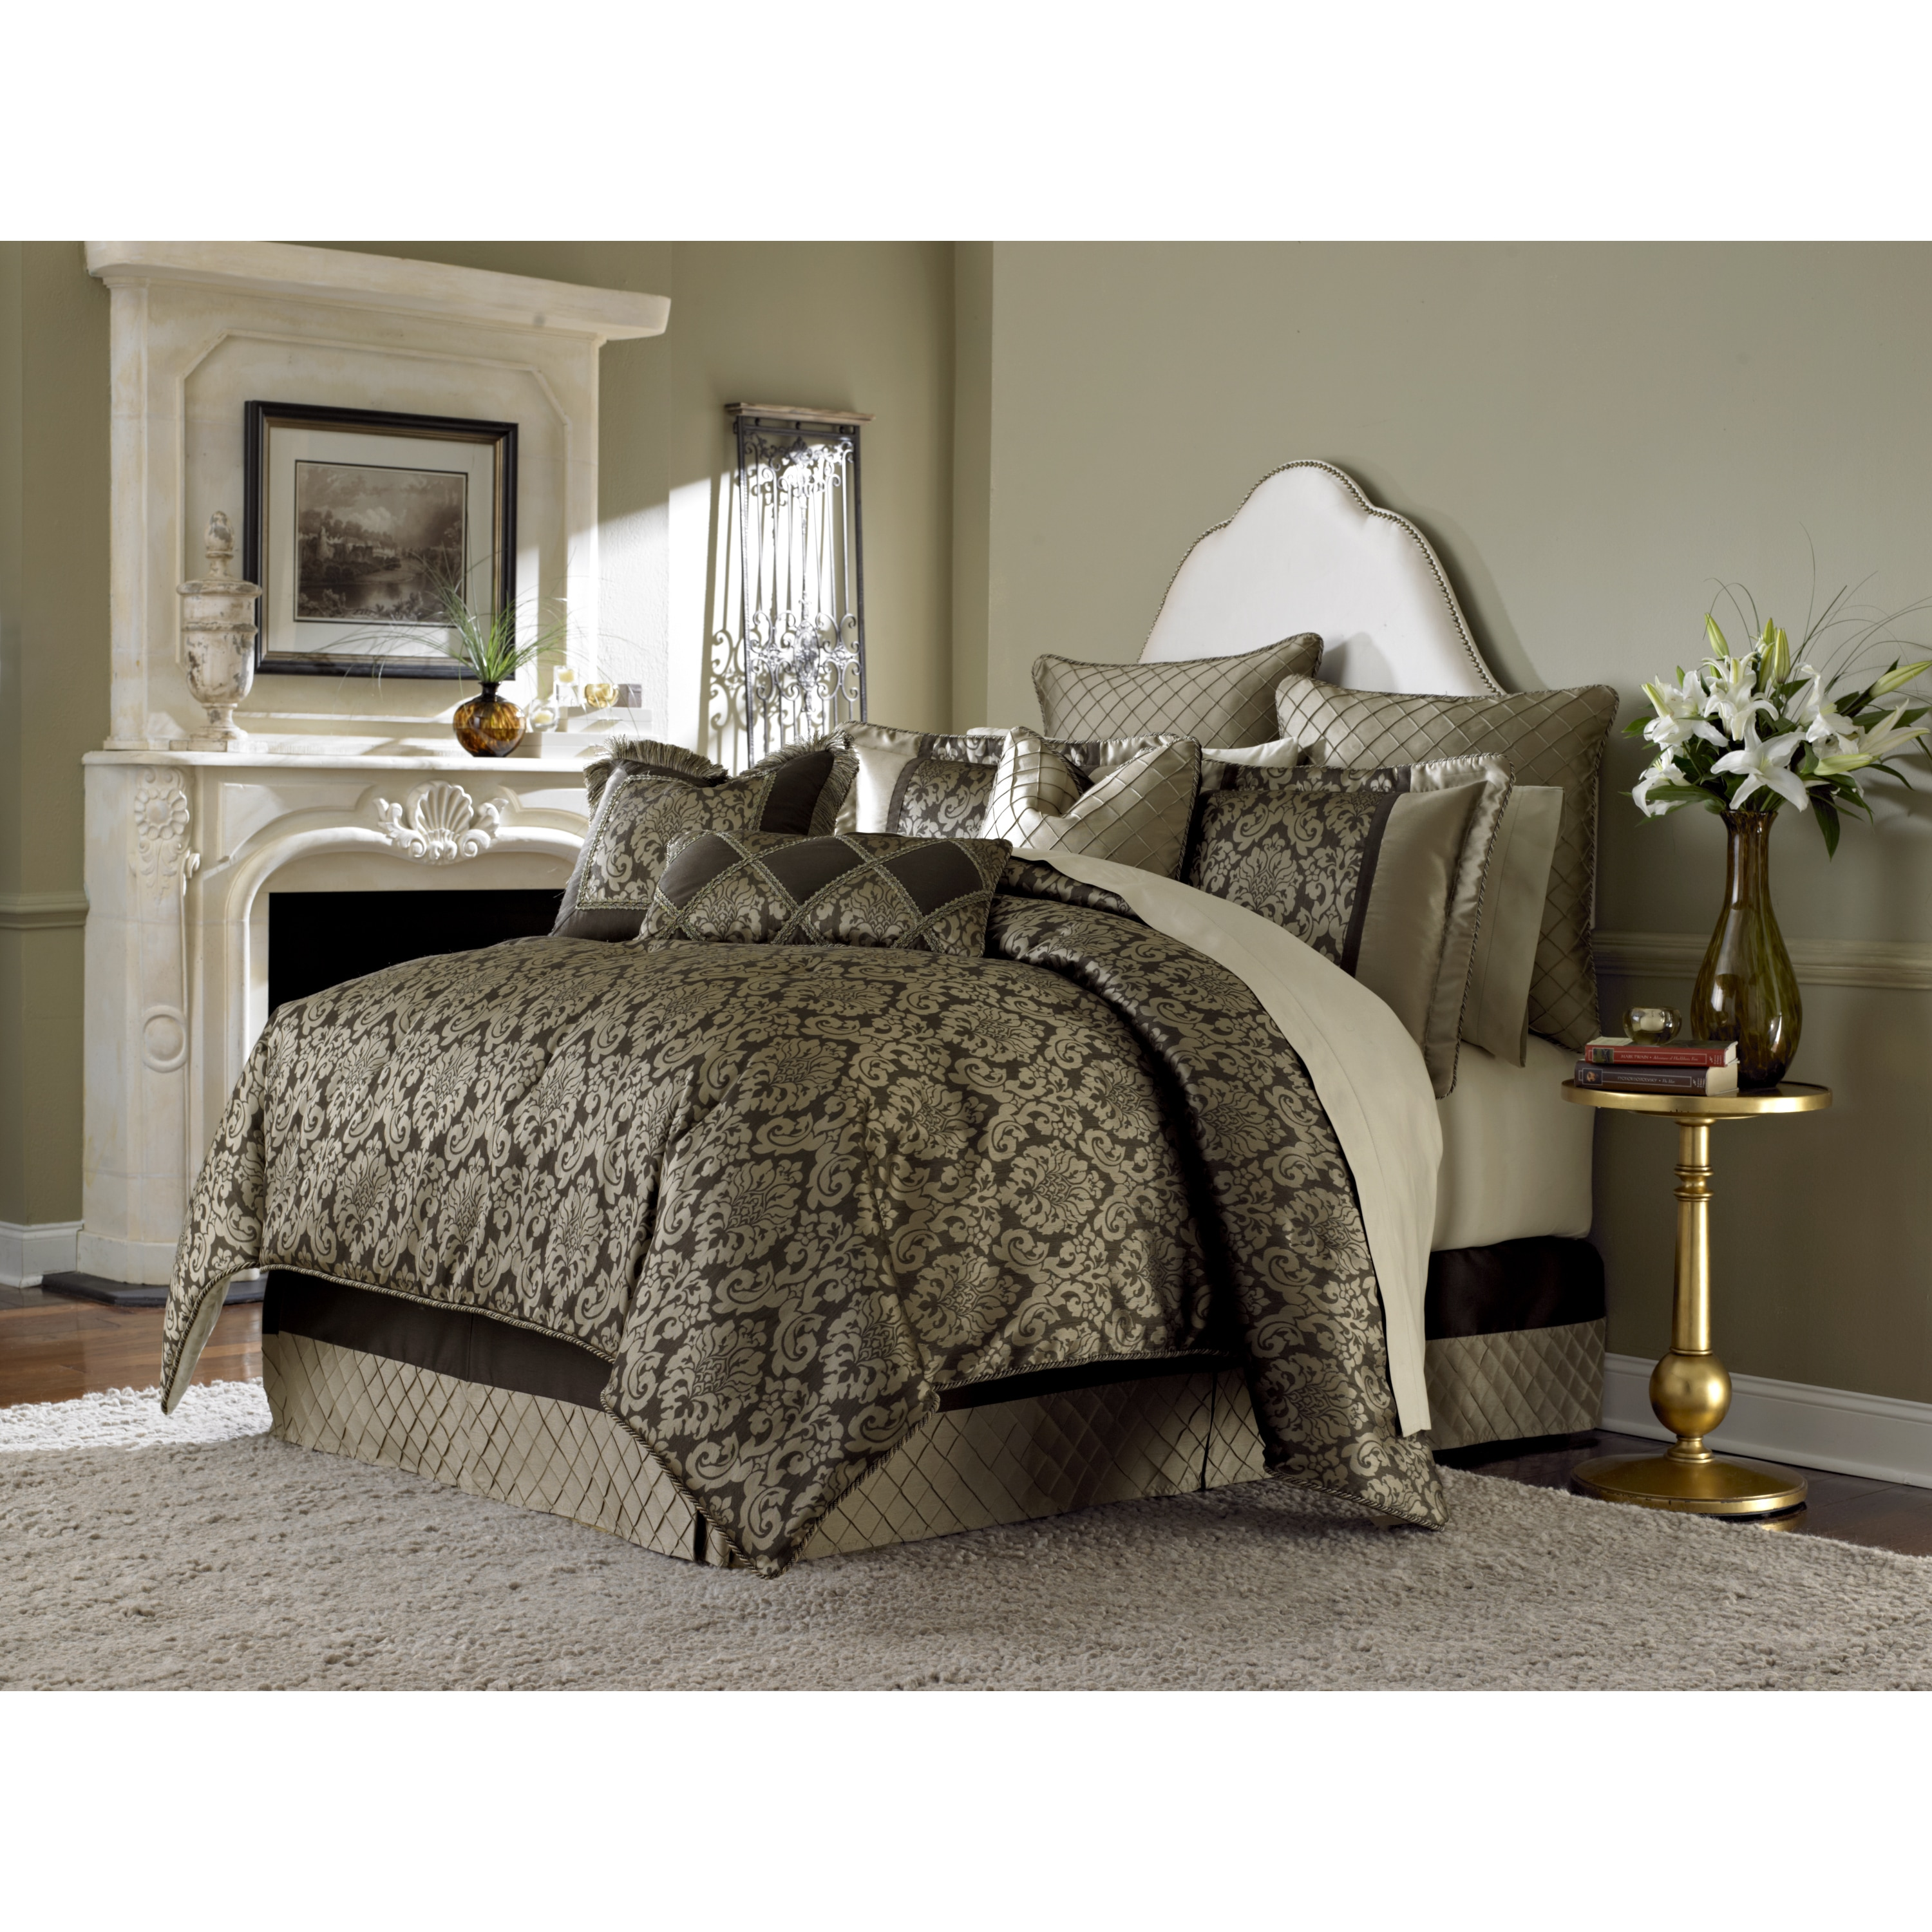 amini michael of esszimmer queen zuhause hollywood aico bed swank design inspiration bedding